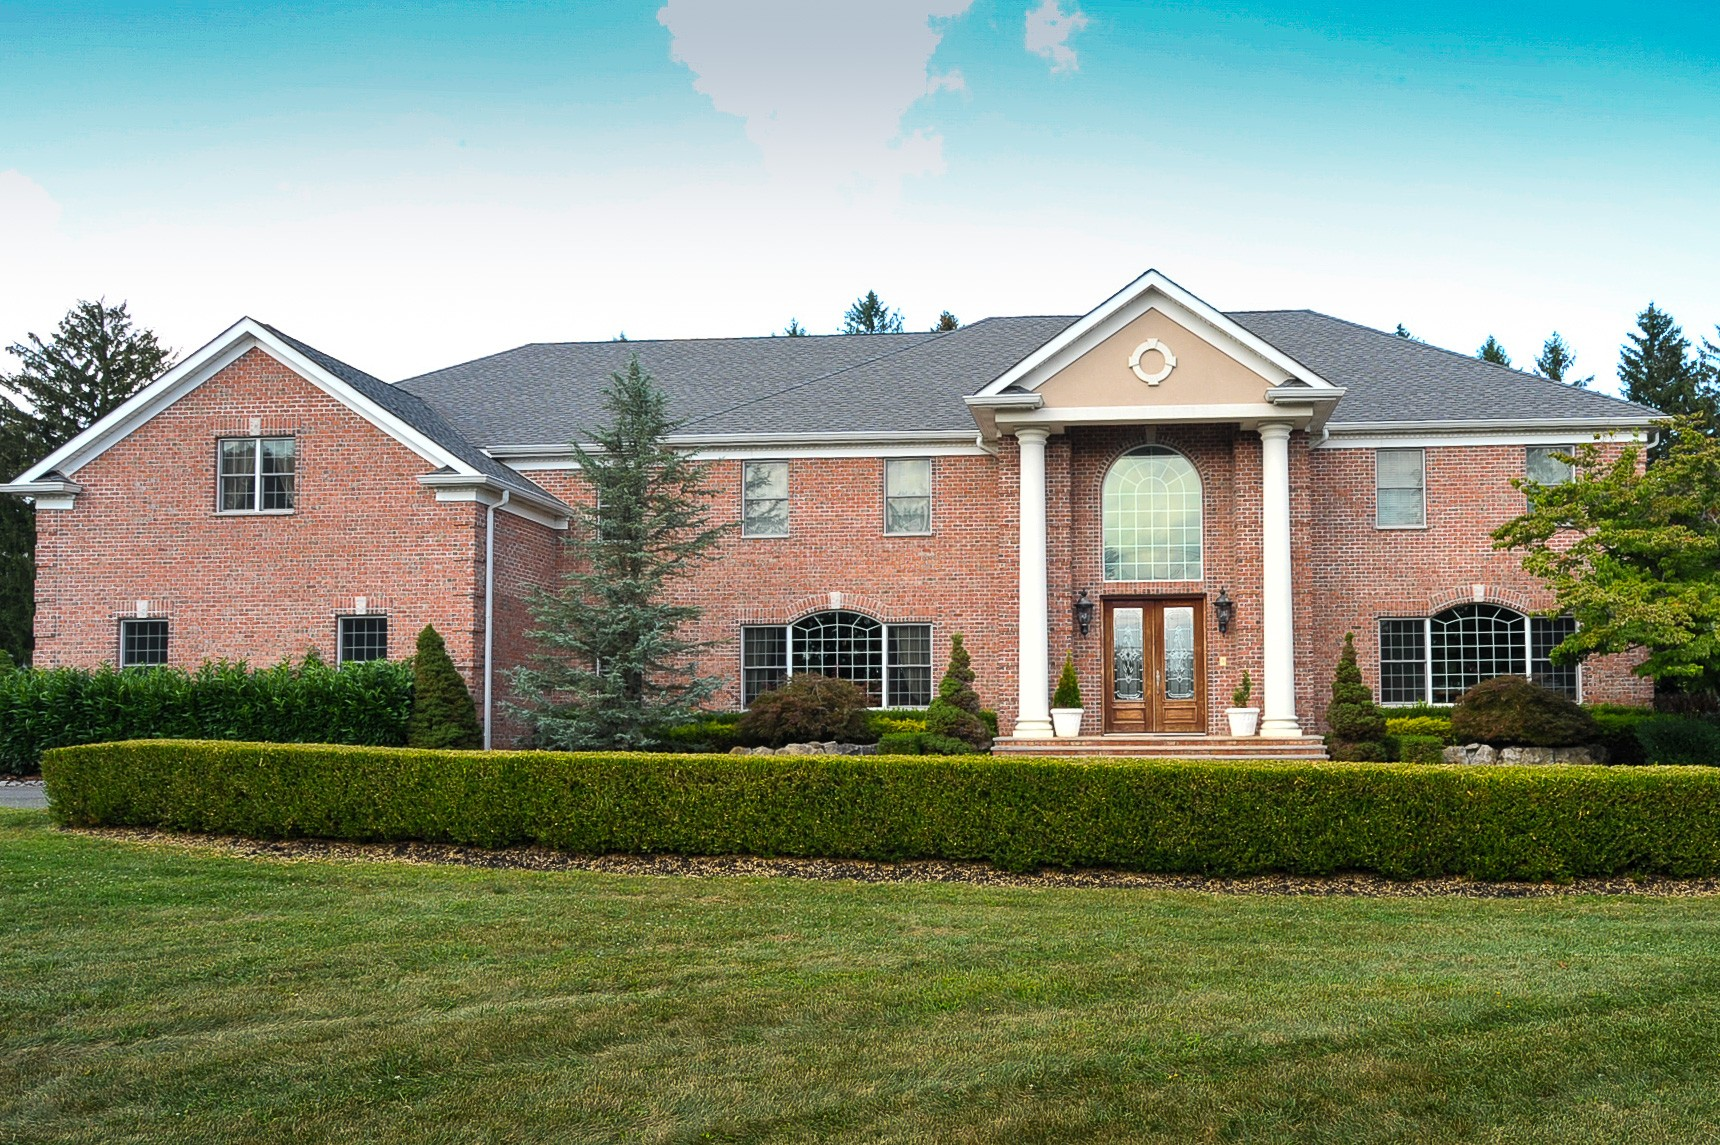 Maison unifamiliale pour l Vente à 5 Maplecrest Lane Colts Neck, New Jersey, 07722 États-Unis